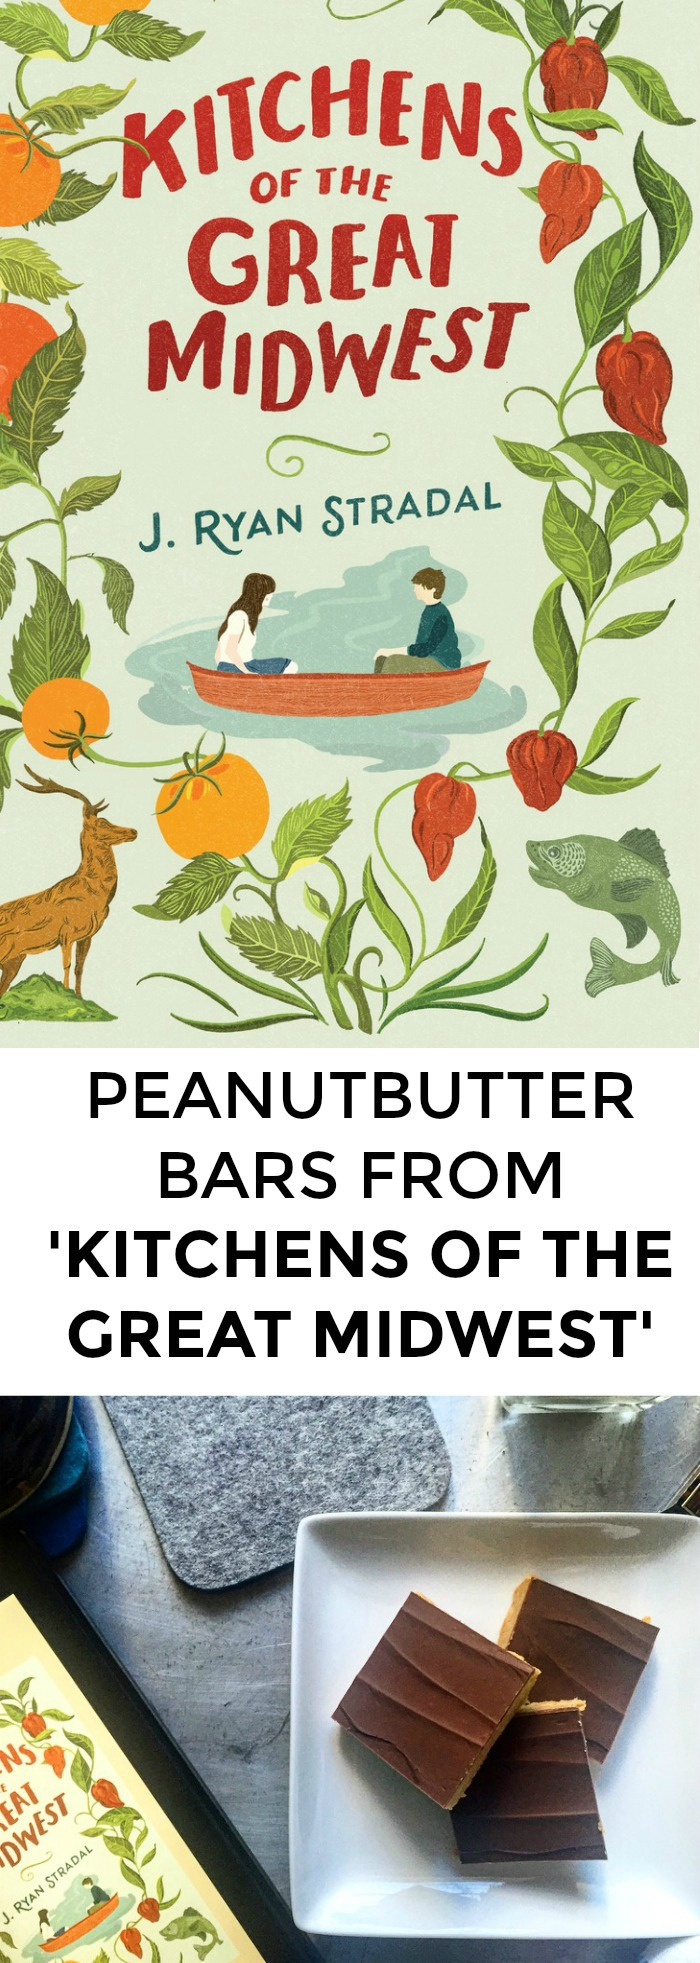 Looking for recipes from Kitchens Of The Great Midwest? Want a great recipe for peanut butter bars? Click through for a great recipe inspired by this best-selling novel!